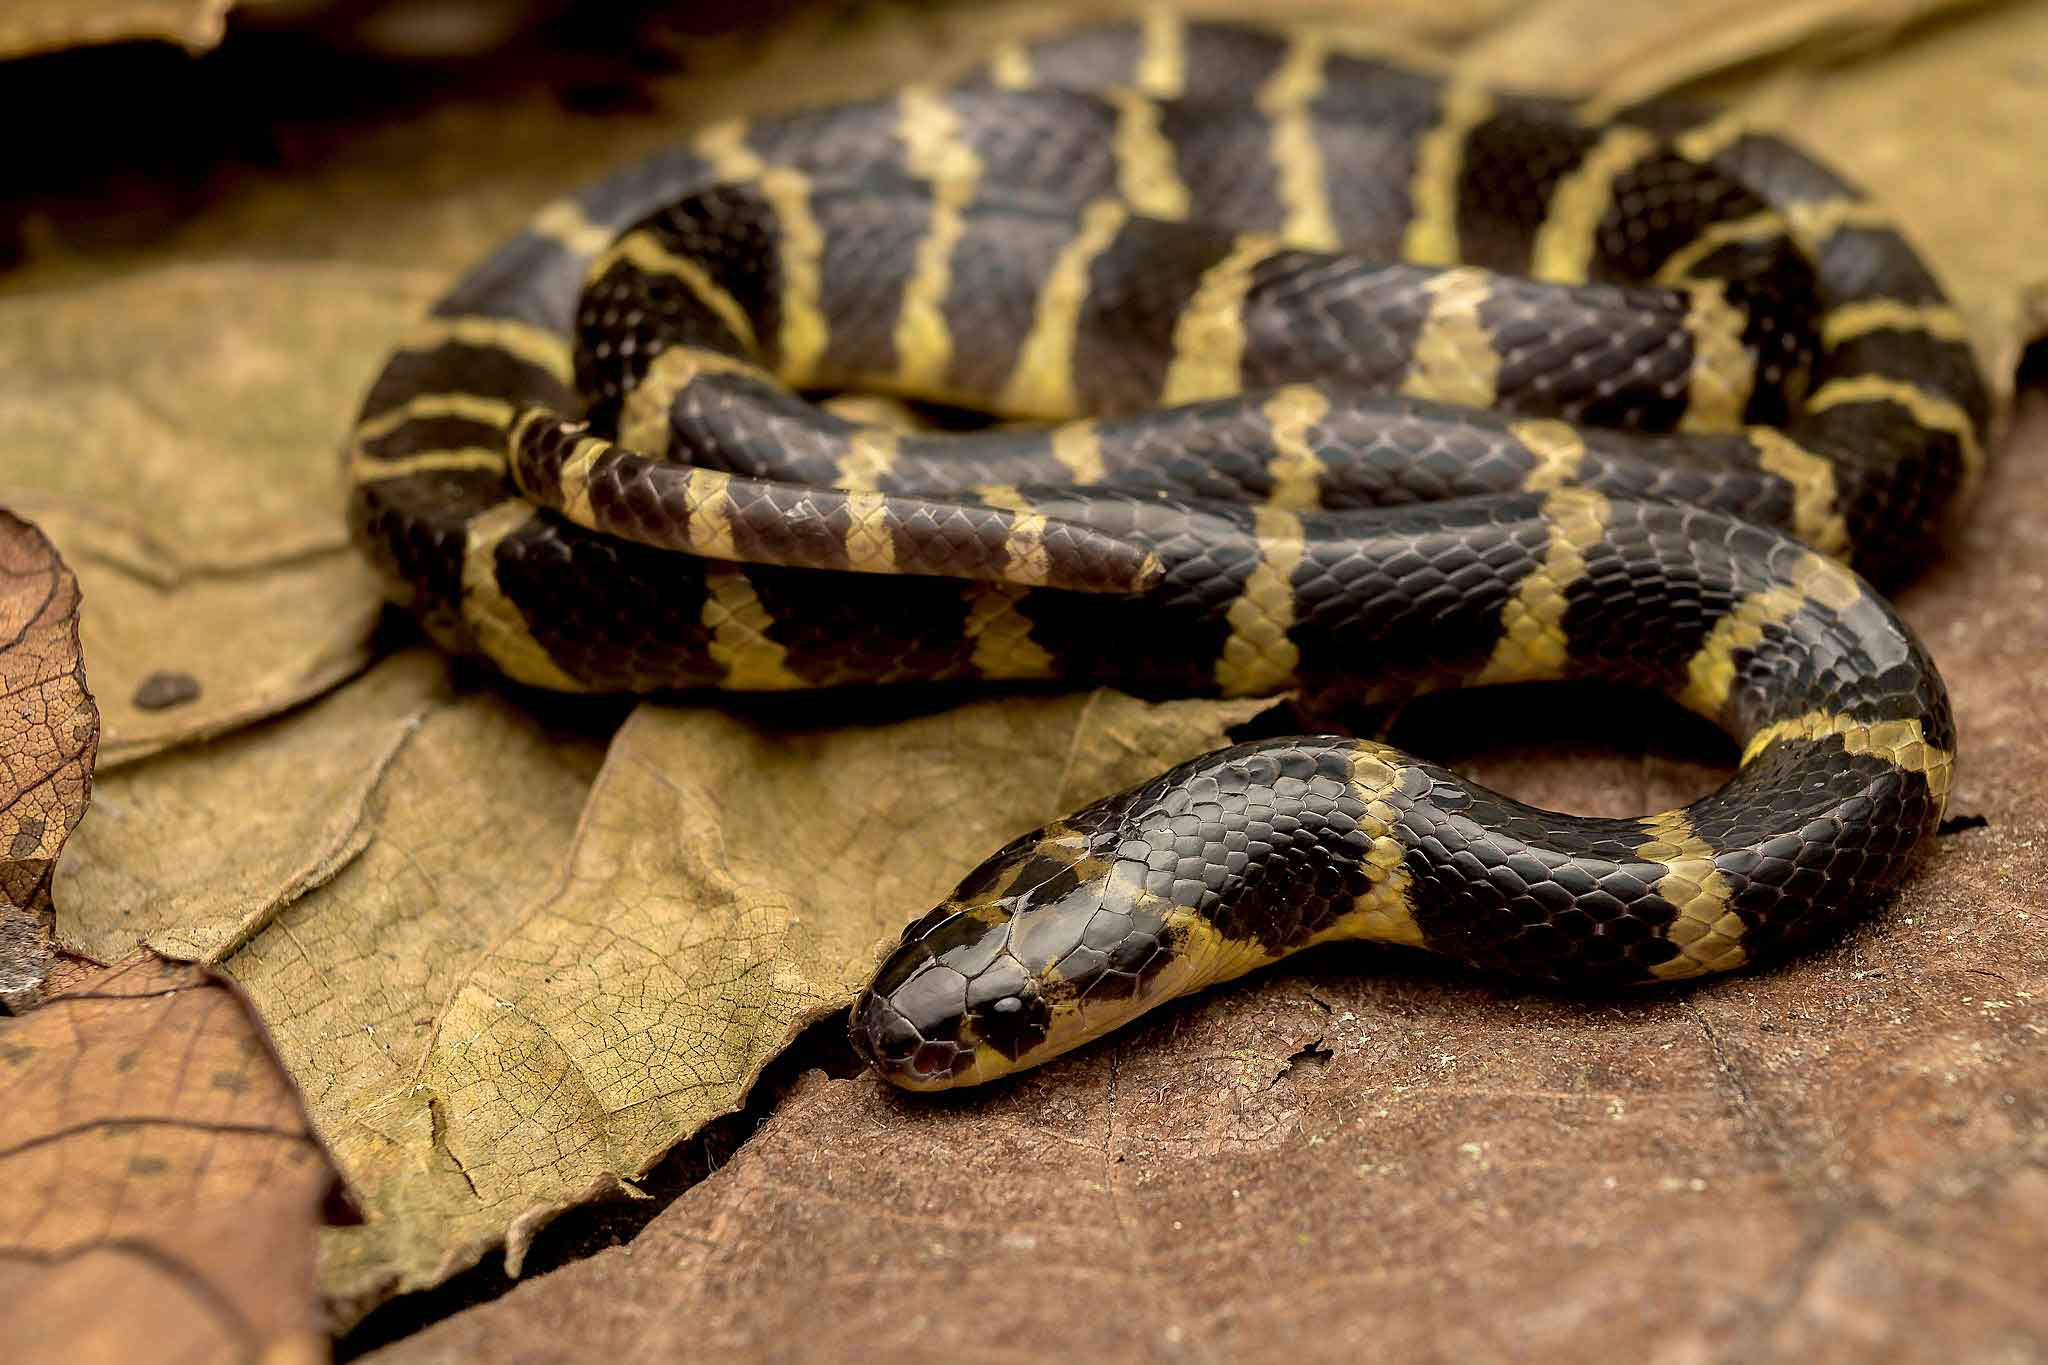 As the name suggests, the Andamans krait (Bungarus andamanensis) is found only in the Andaman Islands and was described in 1978 by S Biswas and DP Sanyal of the Zoological Survey of India. It is the only krait species found on the islands, and interestingly, does not occur in the nearby Nicobar Islands. The snake is seen near roadside ditches during the monsoon. However, nothing is known about its venom, and no fatalities have been reported. Photo: Girish Choure